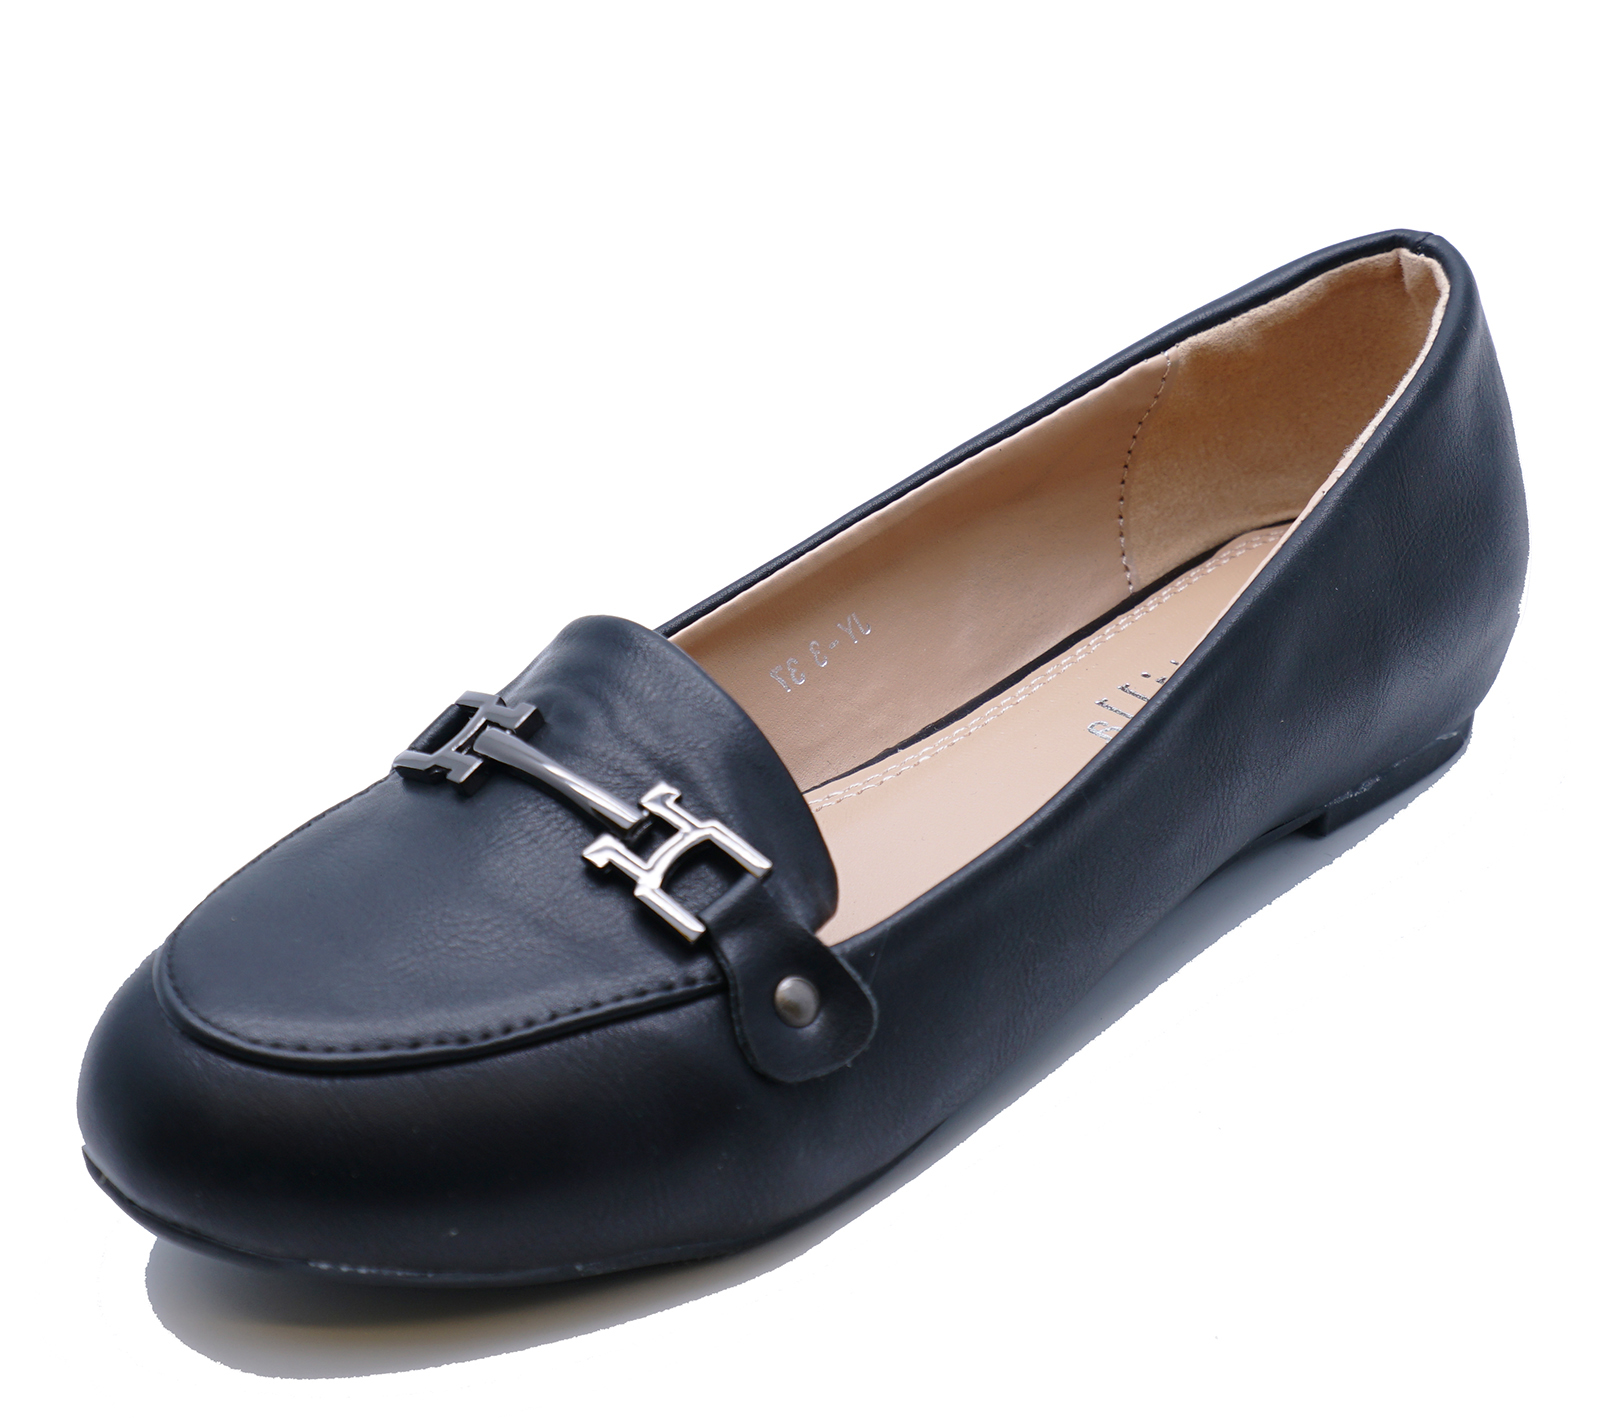 WOMENS FLAT SLIP-ON LOAFERS COMFY SMART CASUAL WORK MOCCASIN SHOES SIZES 3-8